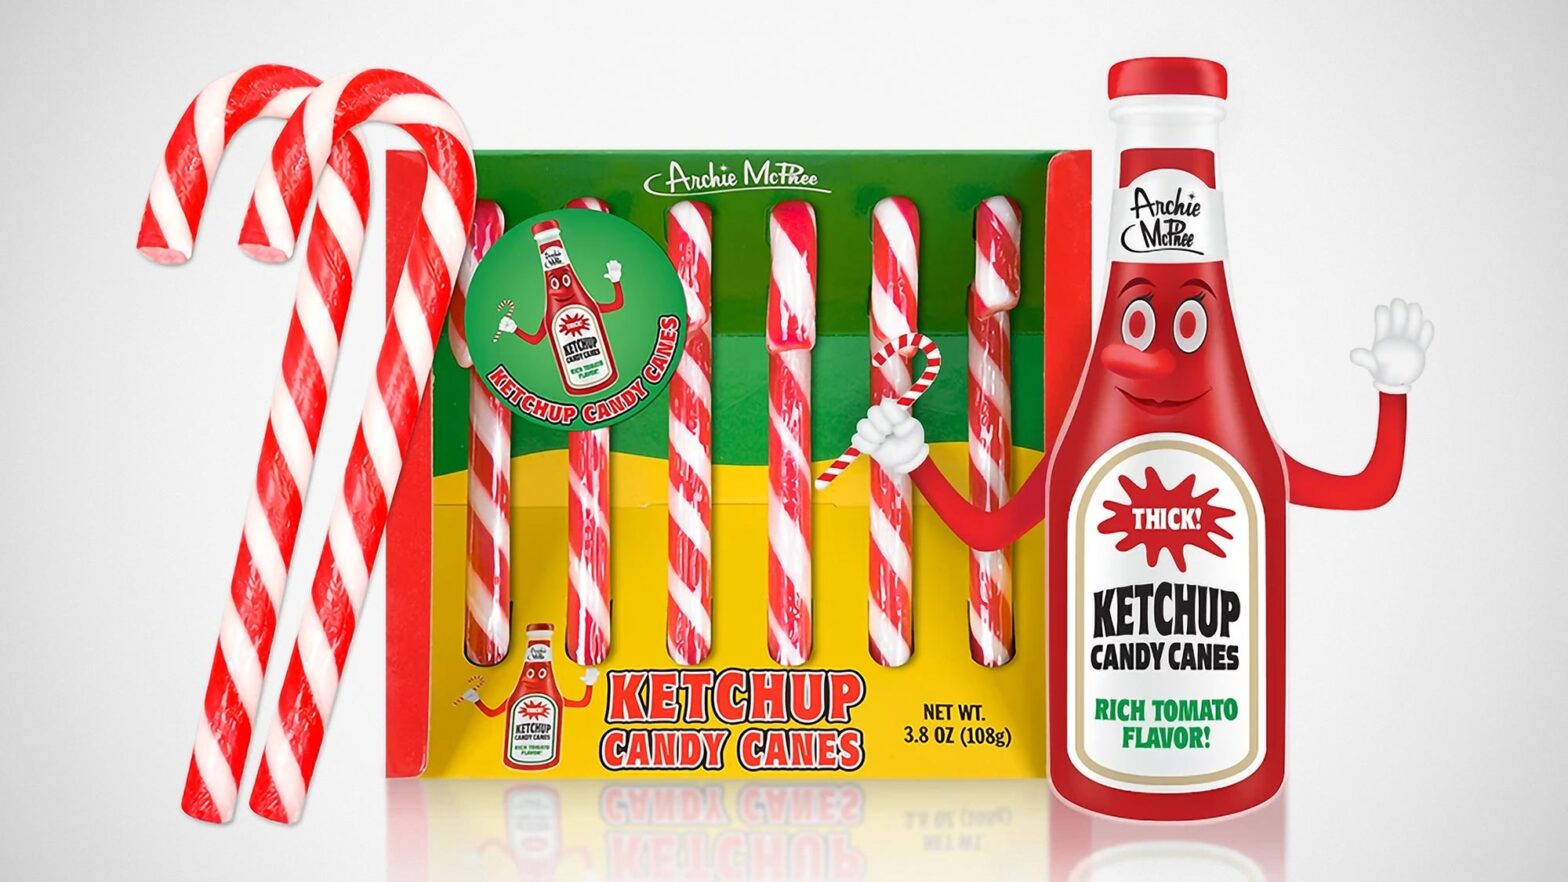 Archie McPhee Ketchup Flavored Candy Canes